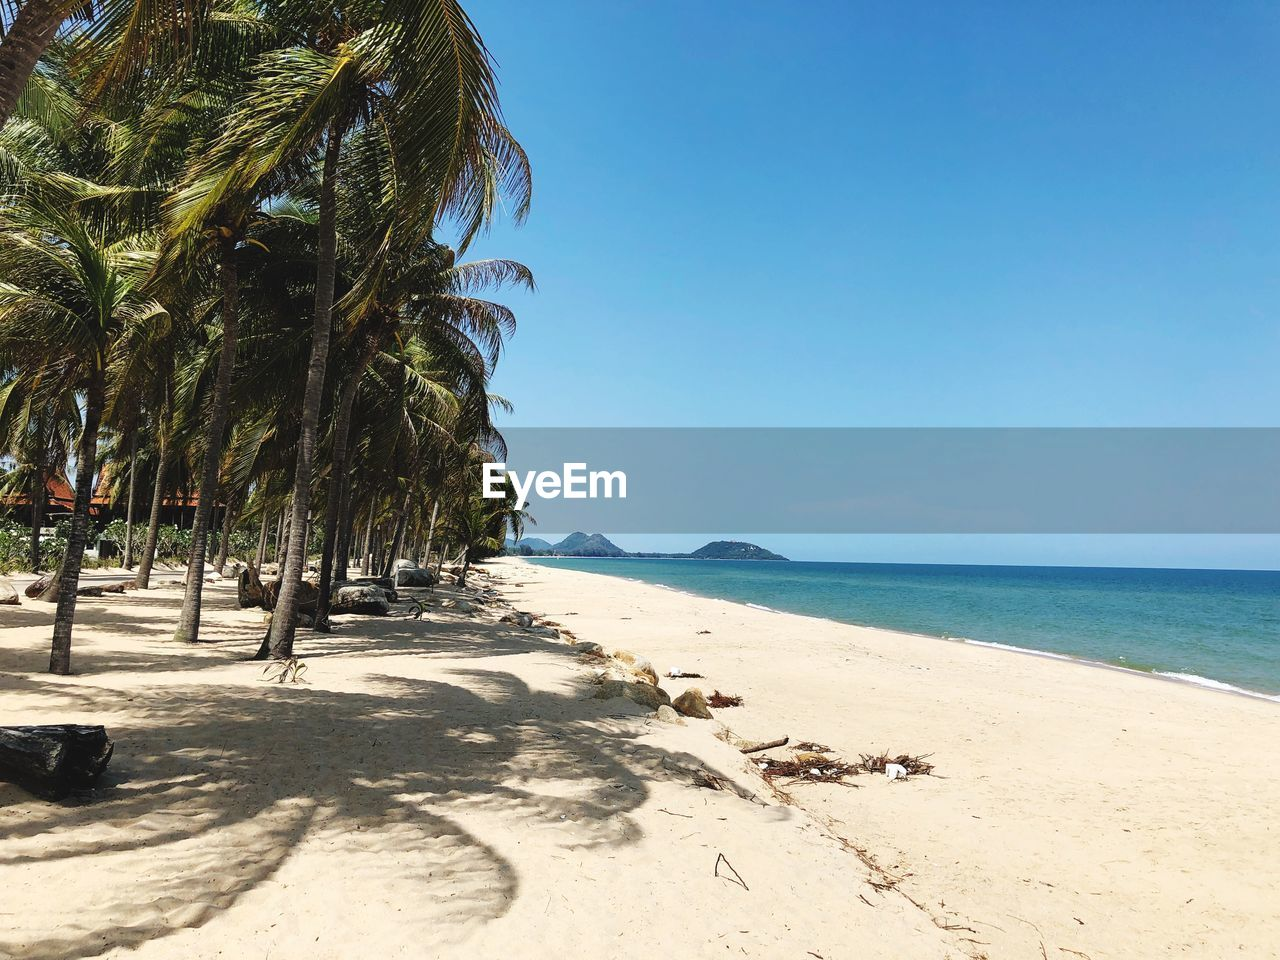 sea, beach, sky, water, palm tree, tropical climate, land, tree, sand, tranquil scene, beauty in nature, clear sky, nature, plant, tranquility, horizon, horizon over water, scenics - nature, sunlight, no people, outdoors, coconut palm tree, tropical tree, palm leaf